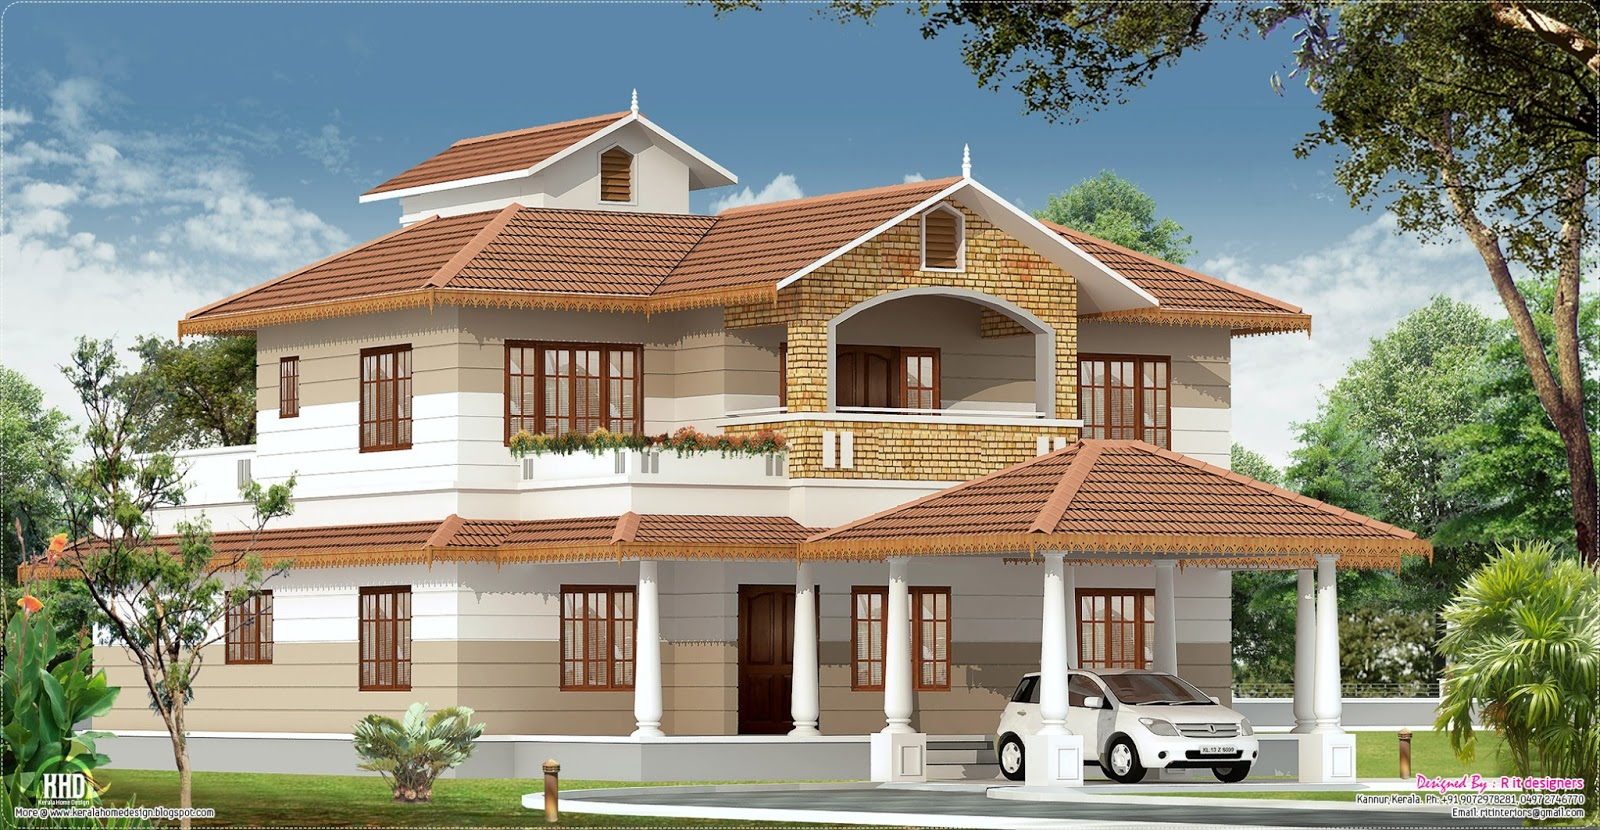 Kerala home with interior designs style house 3d models for Home designs kerala style